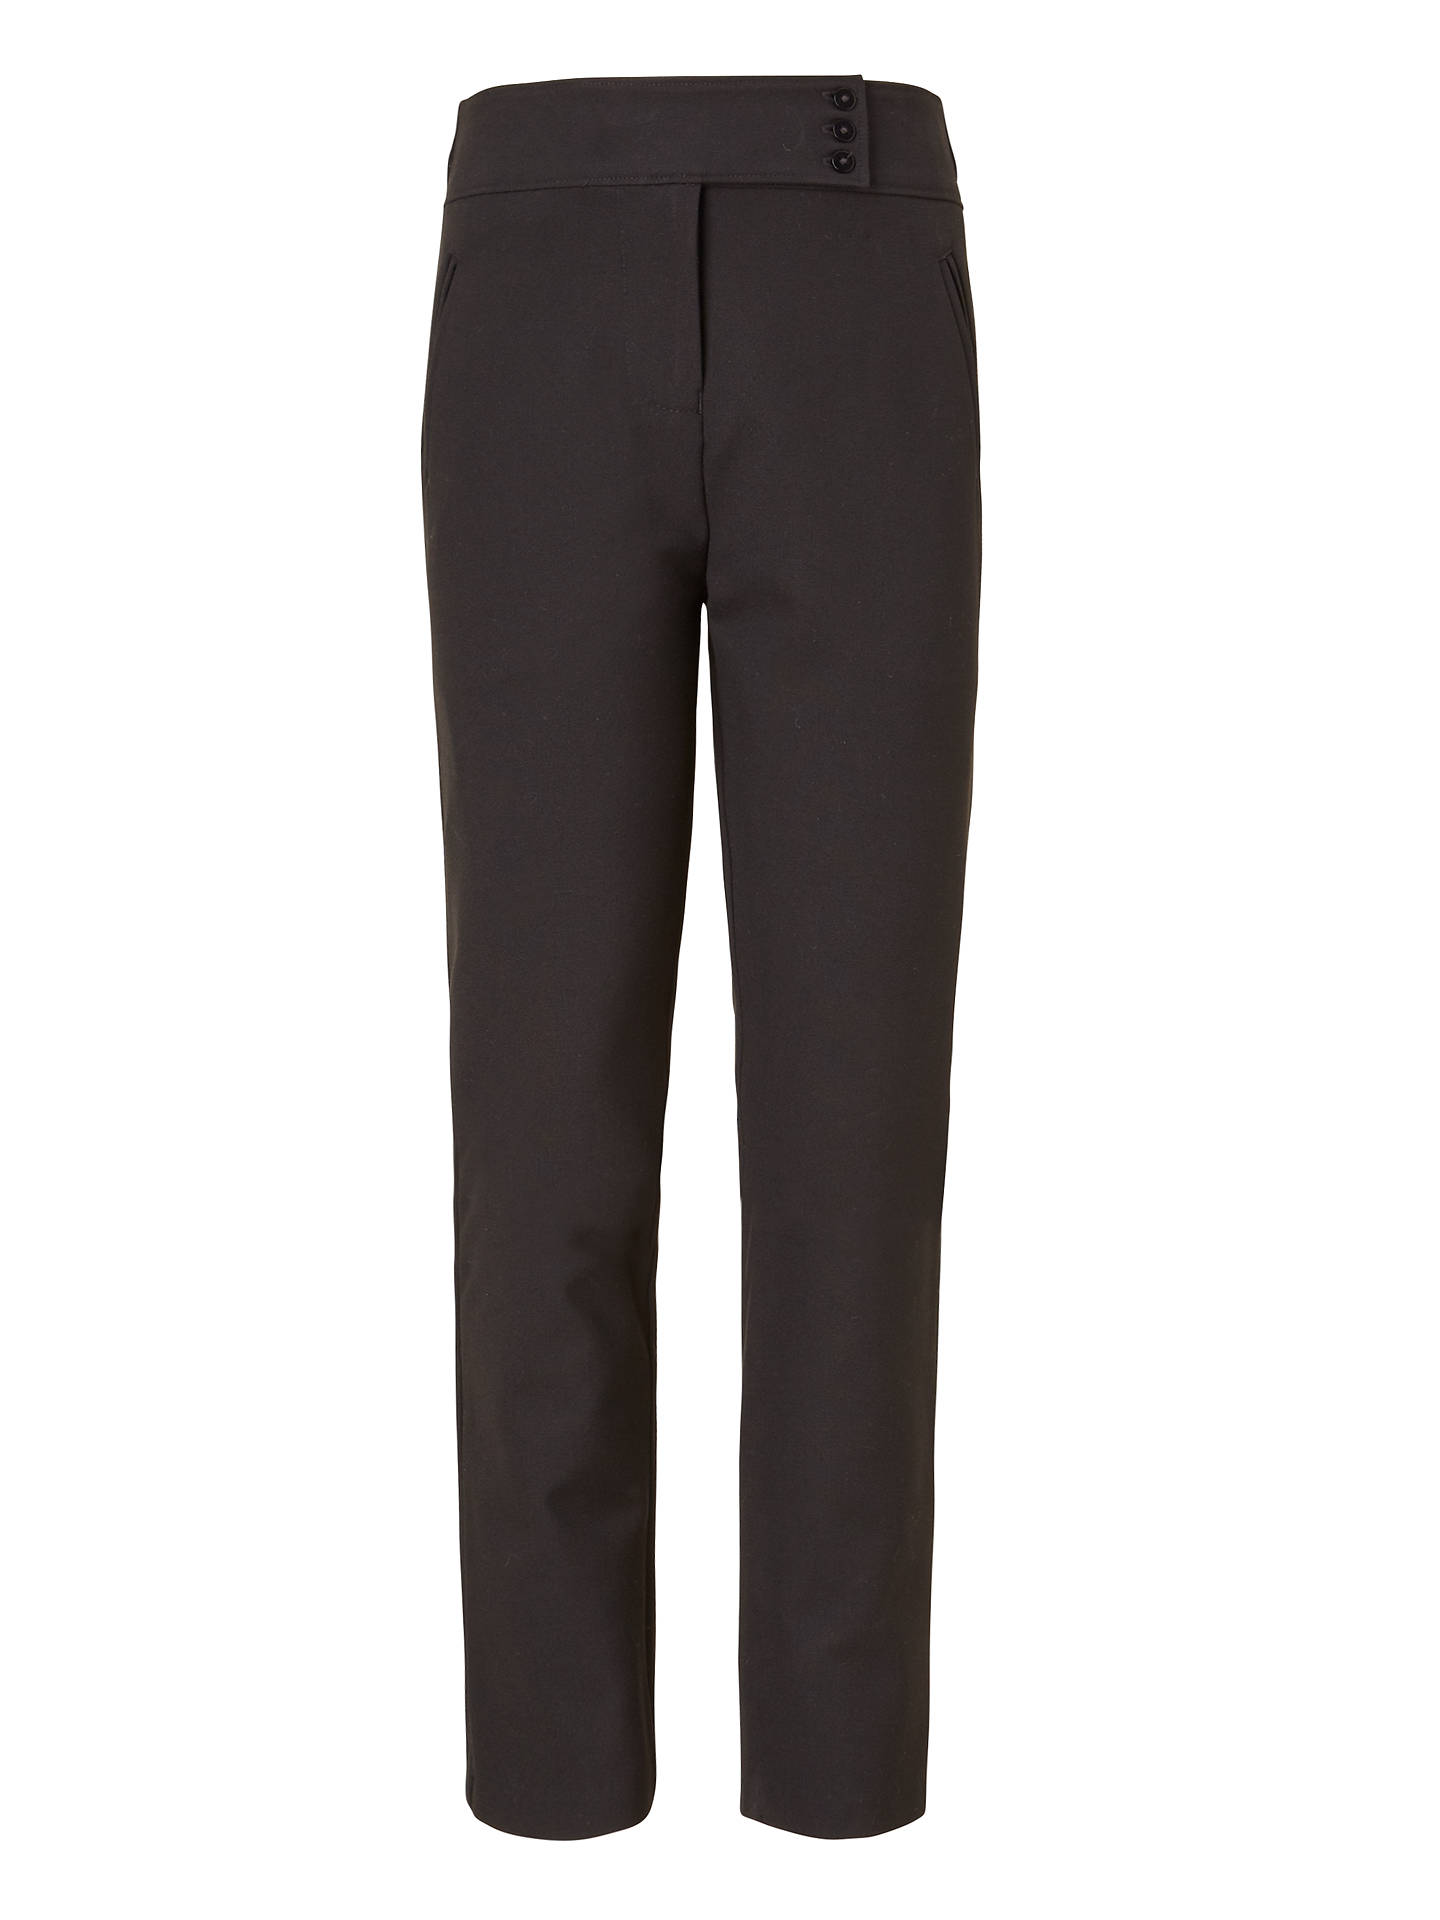 BuyJohn Lewis & Partners Girls' School Trousers, Black, 4 years Online at johnlewis.com